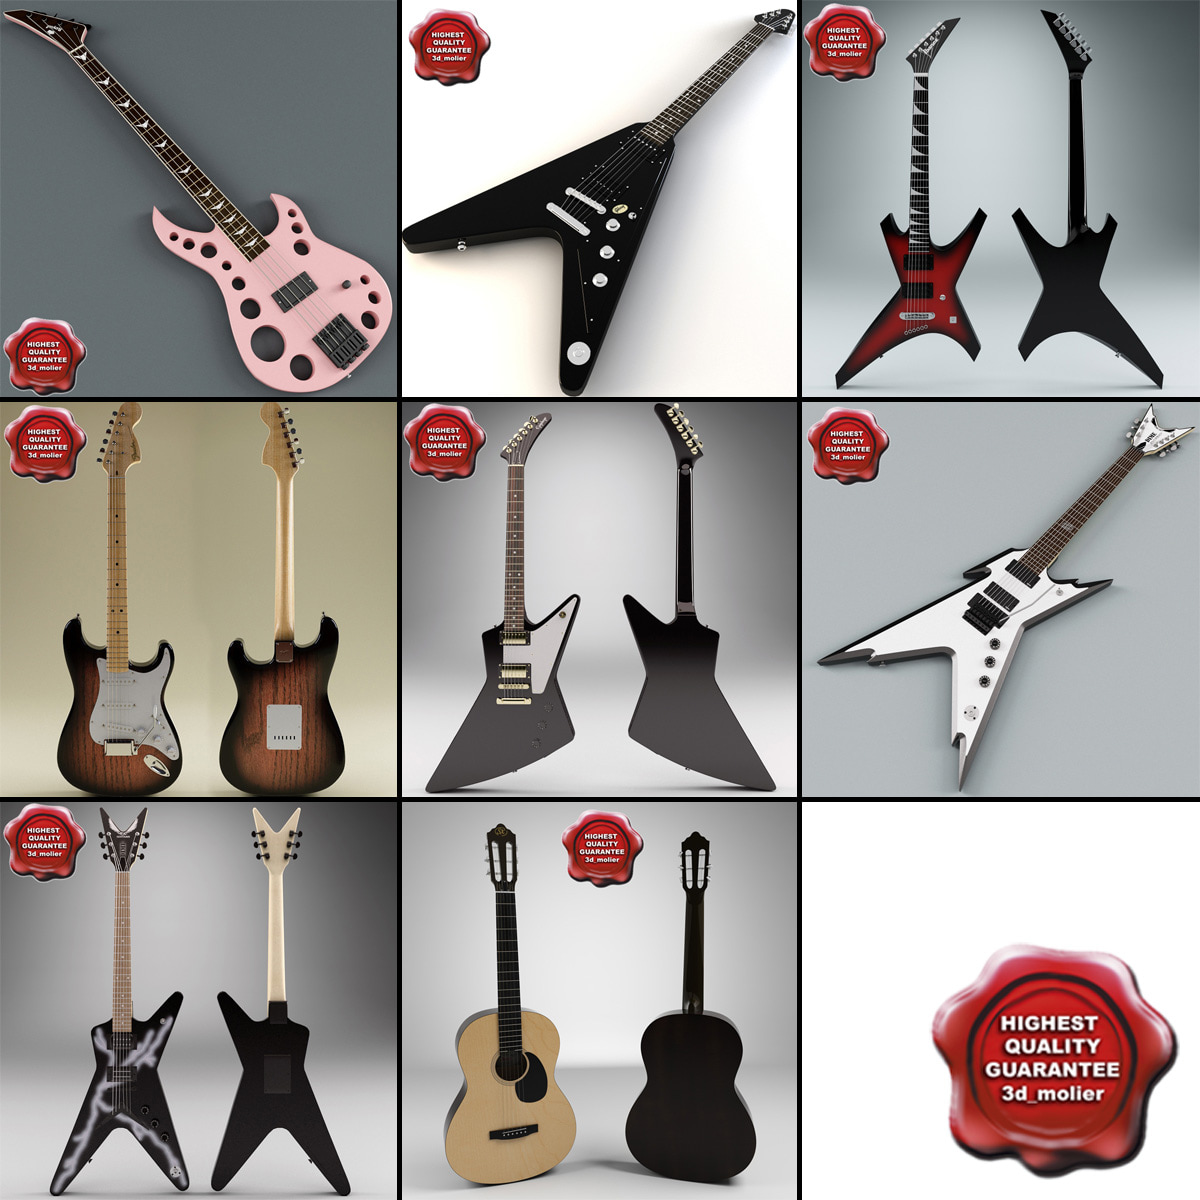 Guitars_Collection_V3_000.jpg